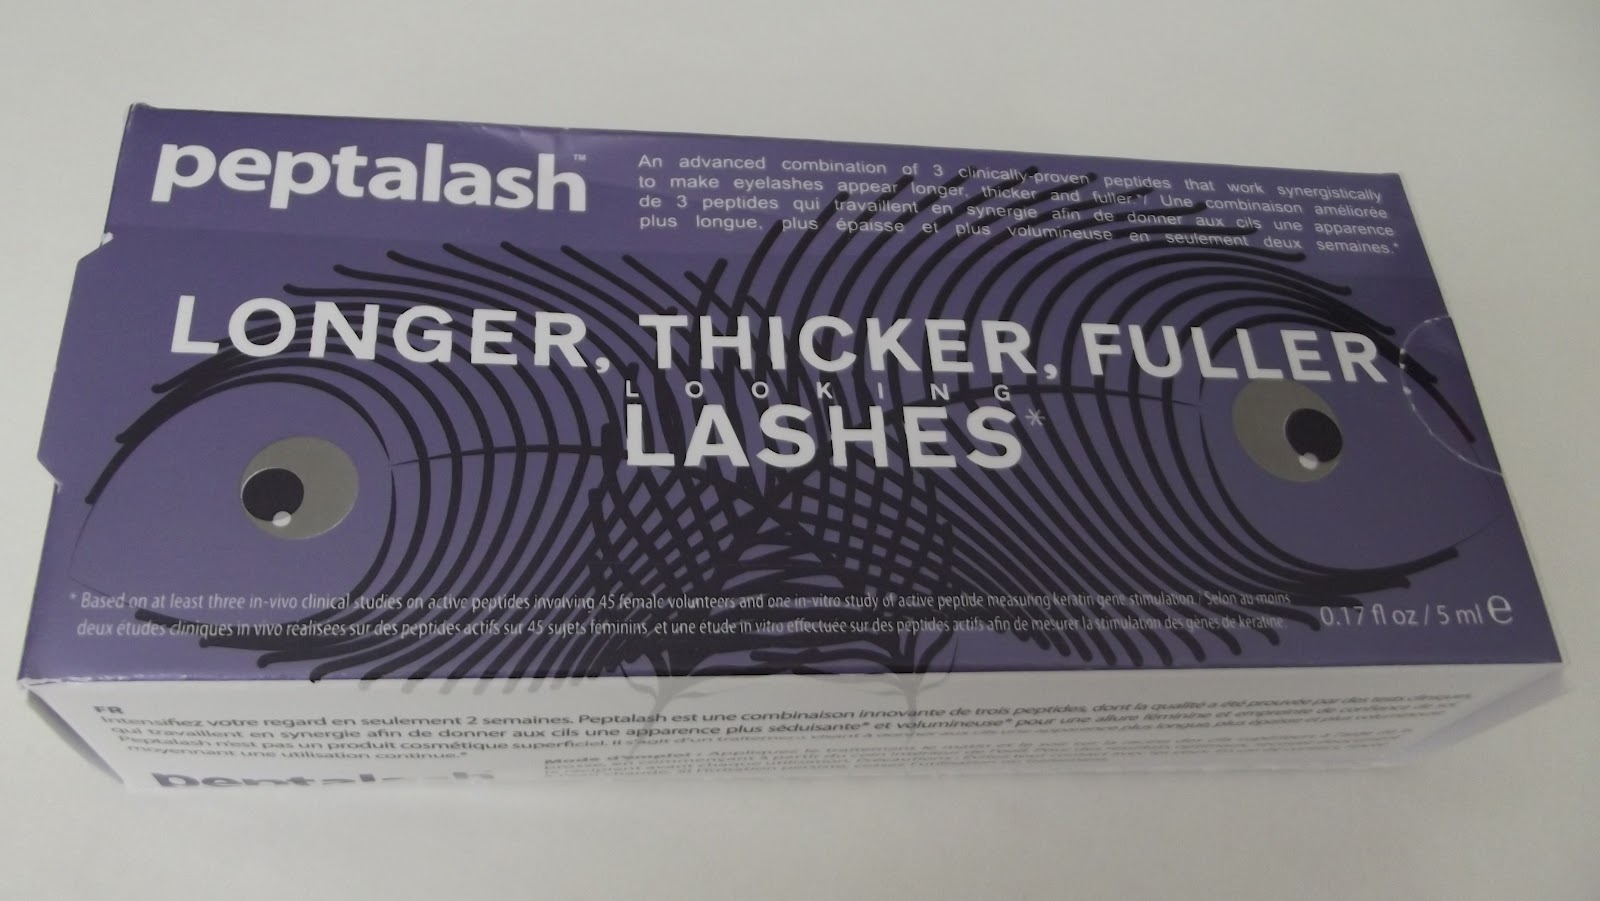 Peptalash: Longer, thicker, fuller lashes in just two weeks